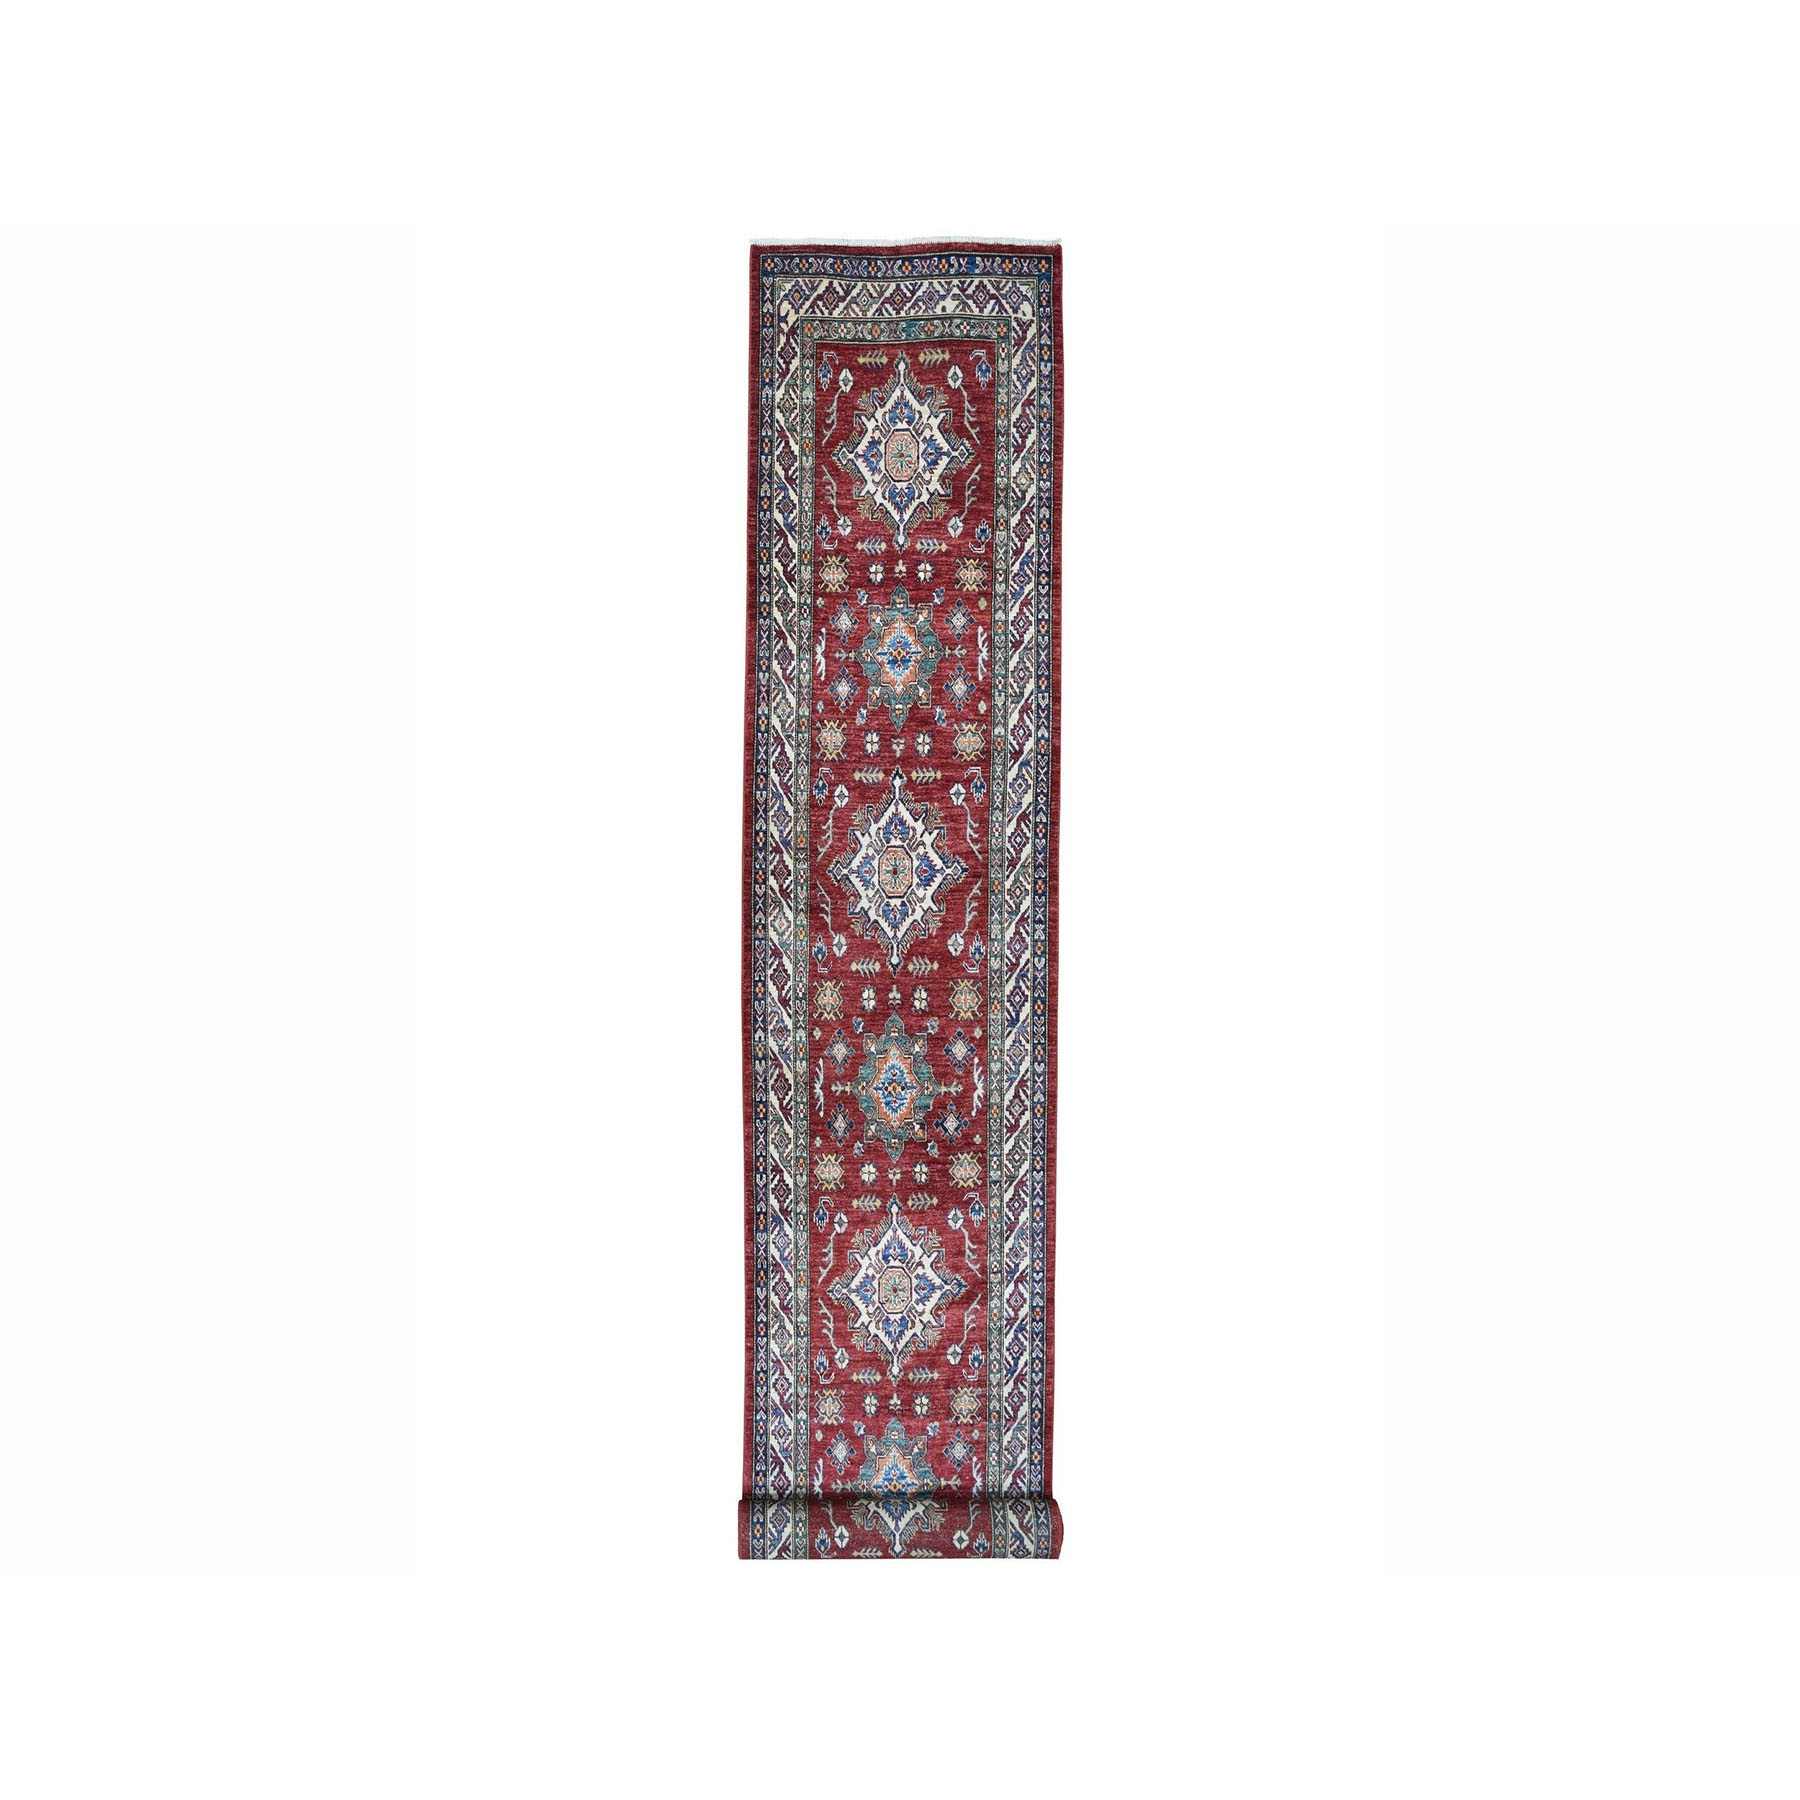 "3'3""X18'7"" Super Kazak Red Geometric Design Pure Wool Hand-Knotted Xl Runner Oriental Rug moae006c"